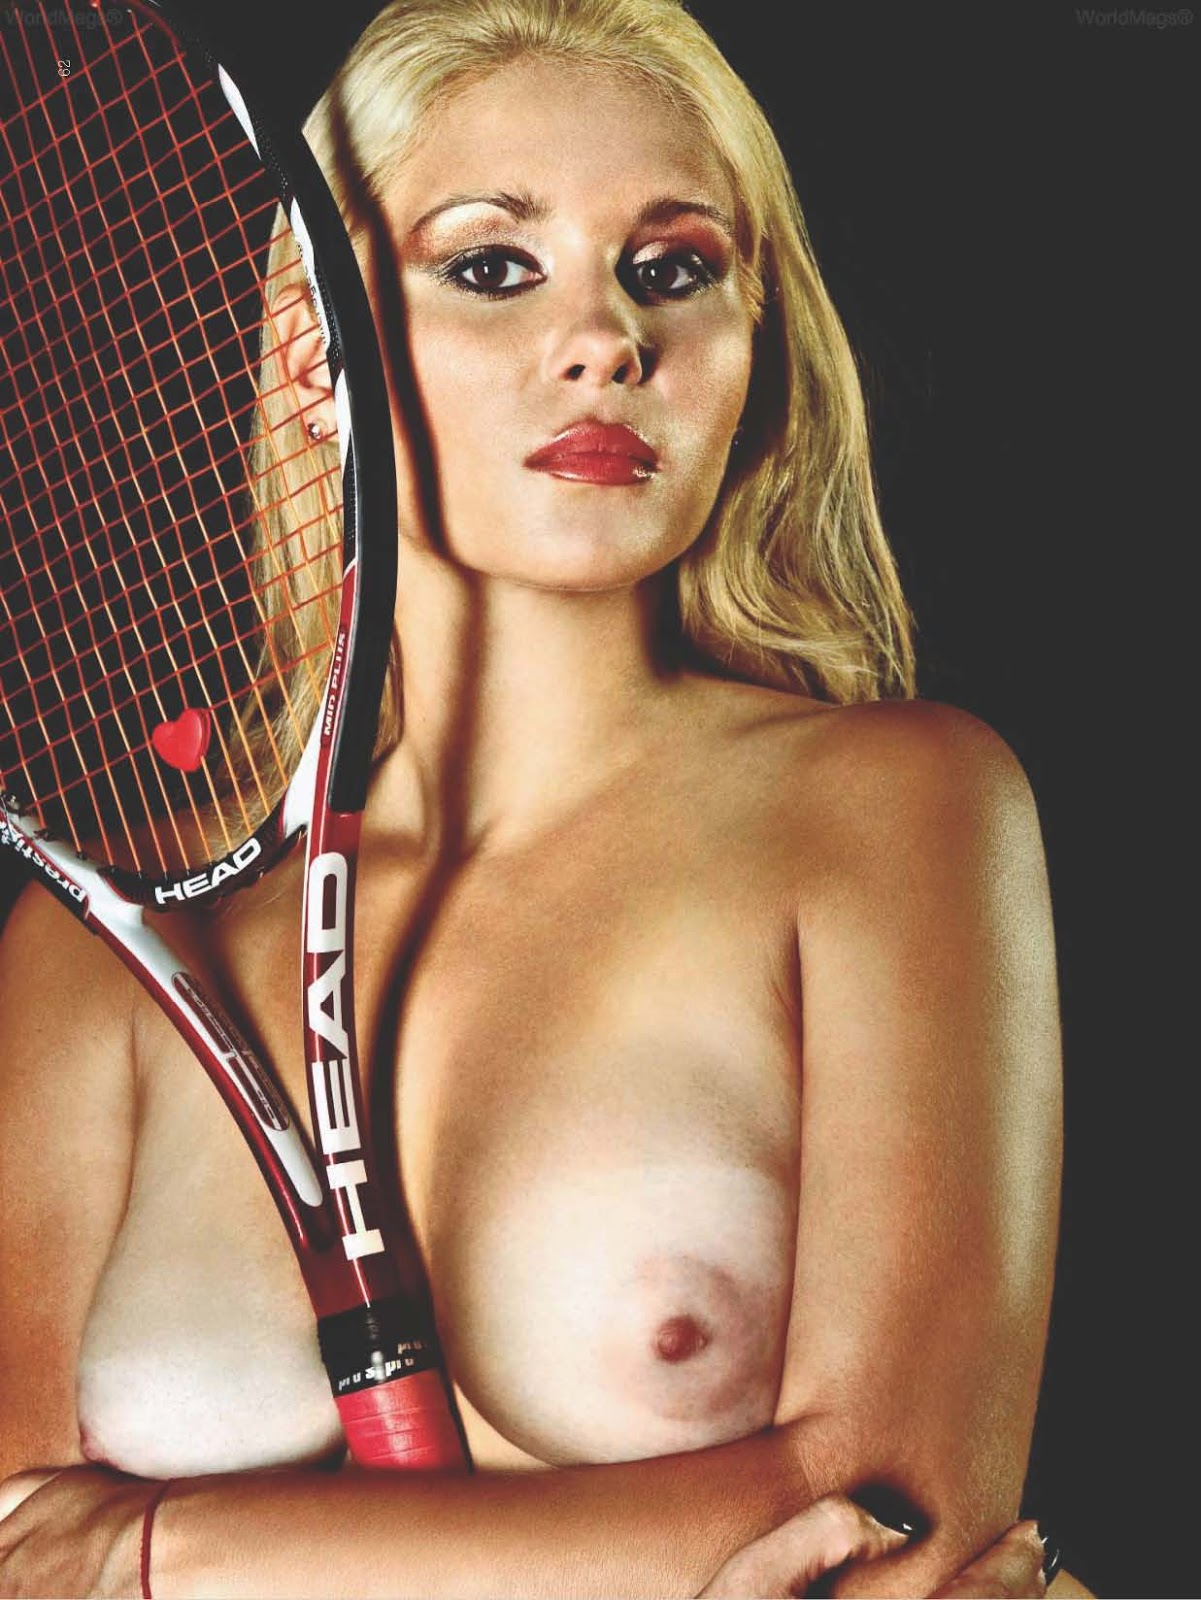 nude pictures of tennis players